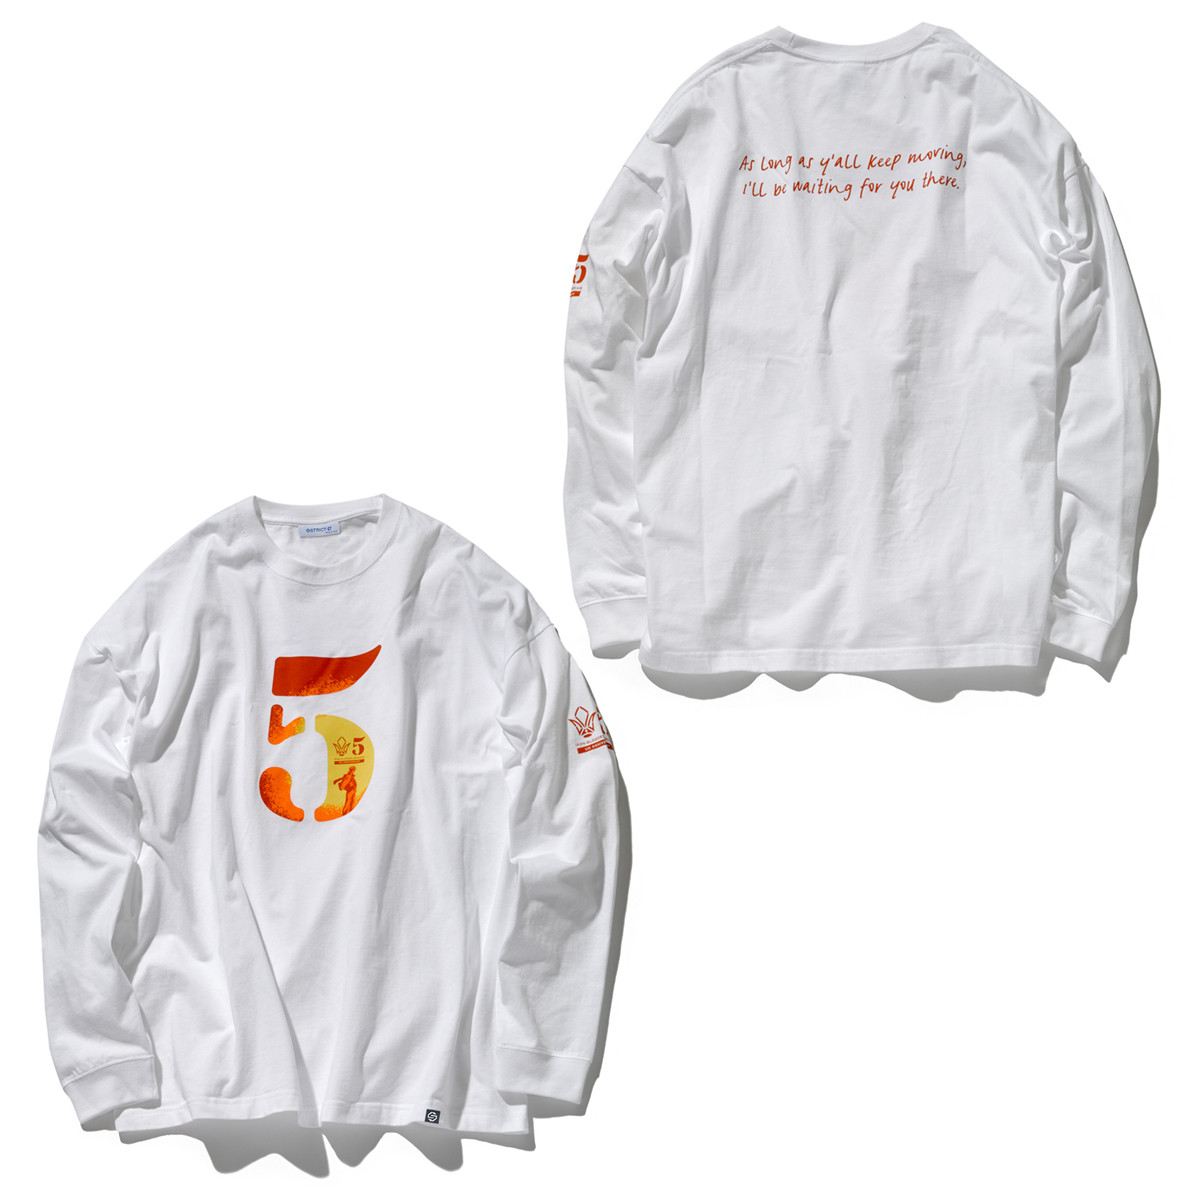 5th Anniversary Long-Sleeve T-shirt—Mobile Suit Gundam IRON-BLOODED ORPHANS/STRICT-G Collaboration